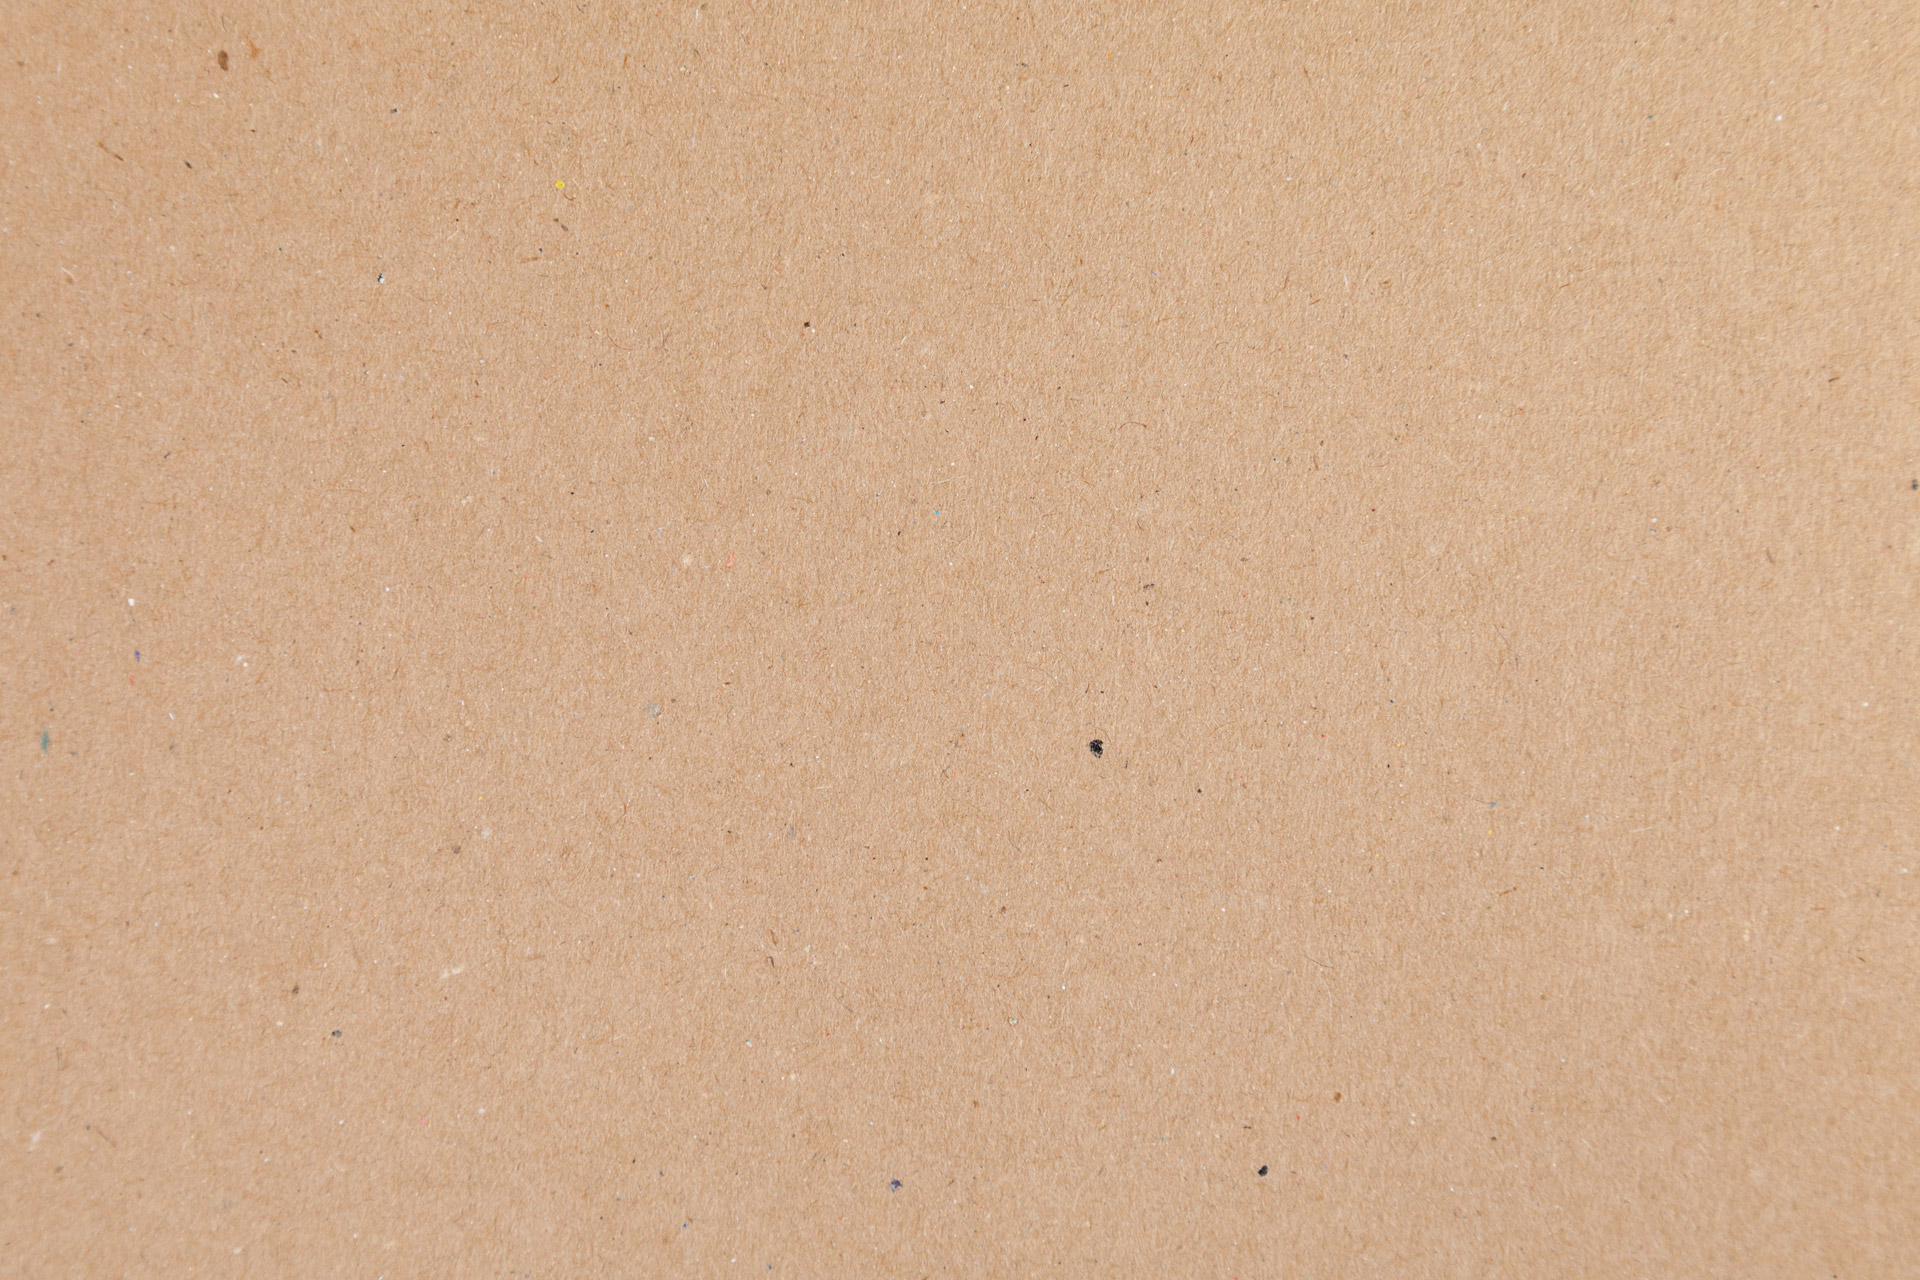 Cardboard Texture Free Stock Photo   Public Domain Pictures Cardboard Texture